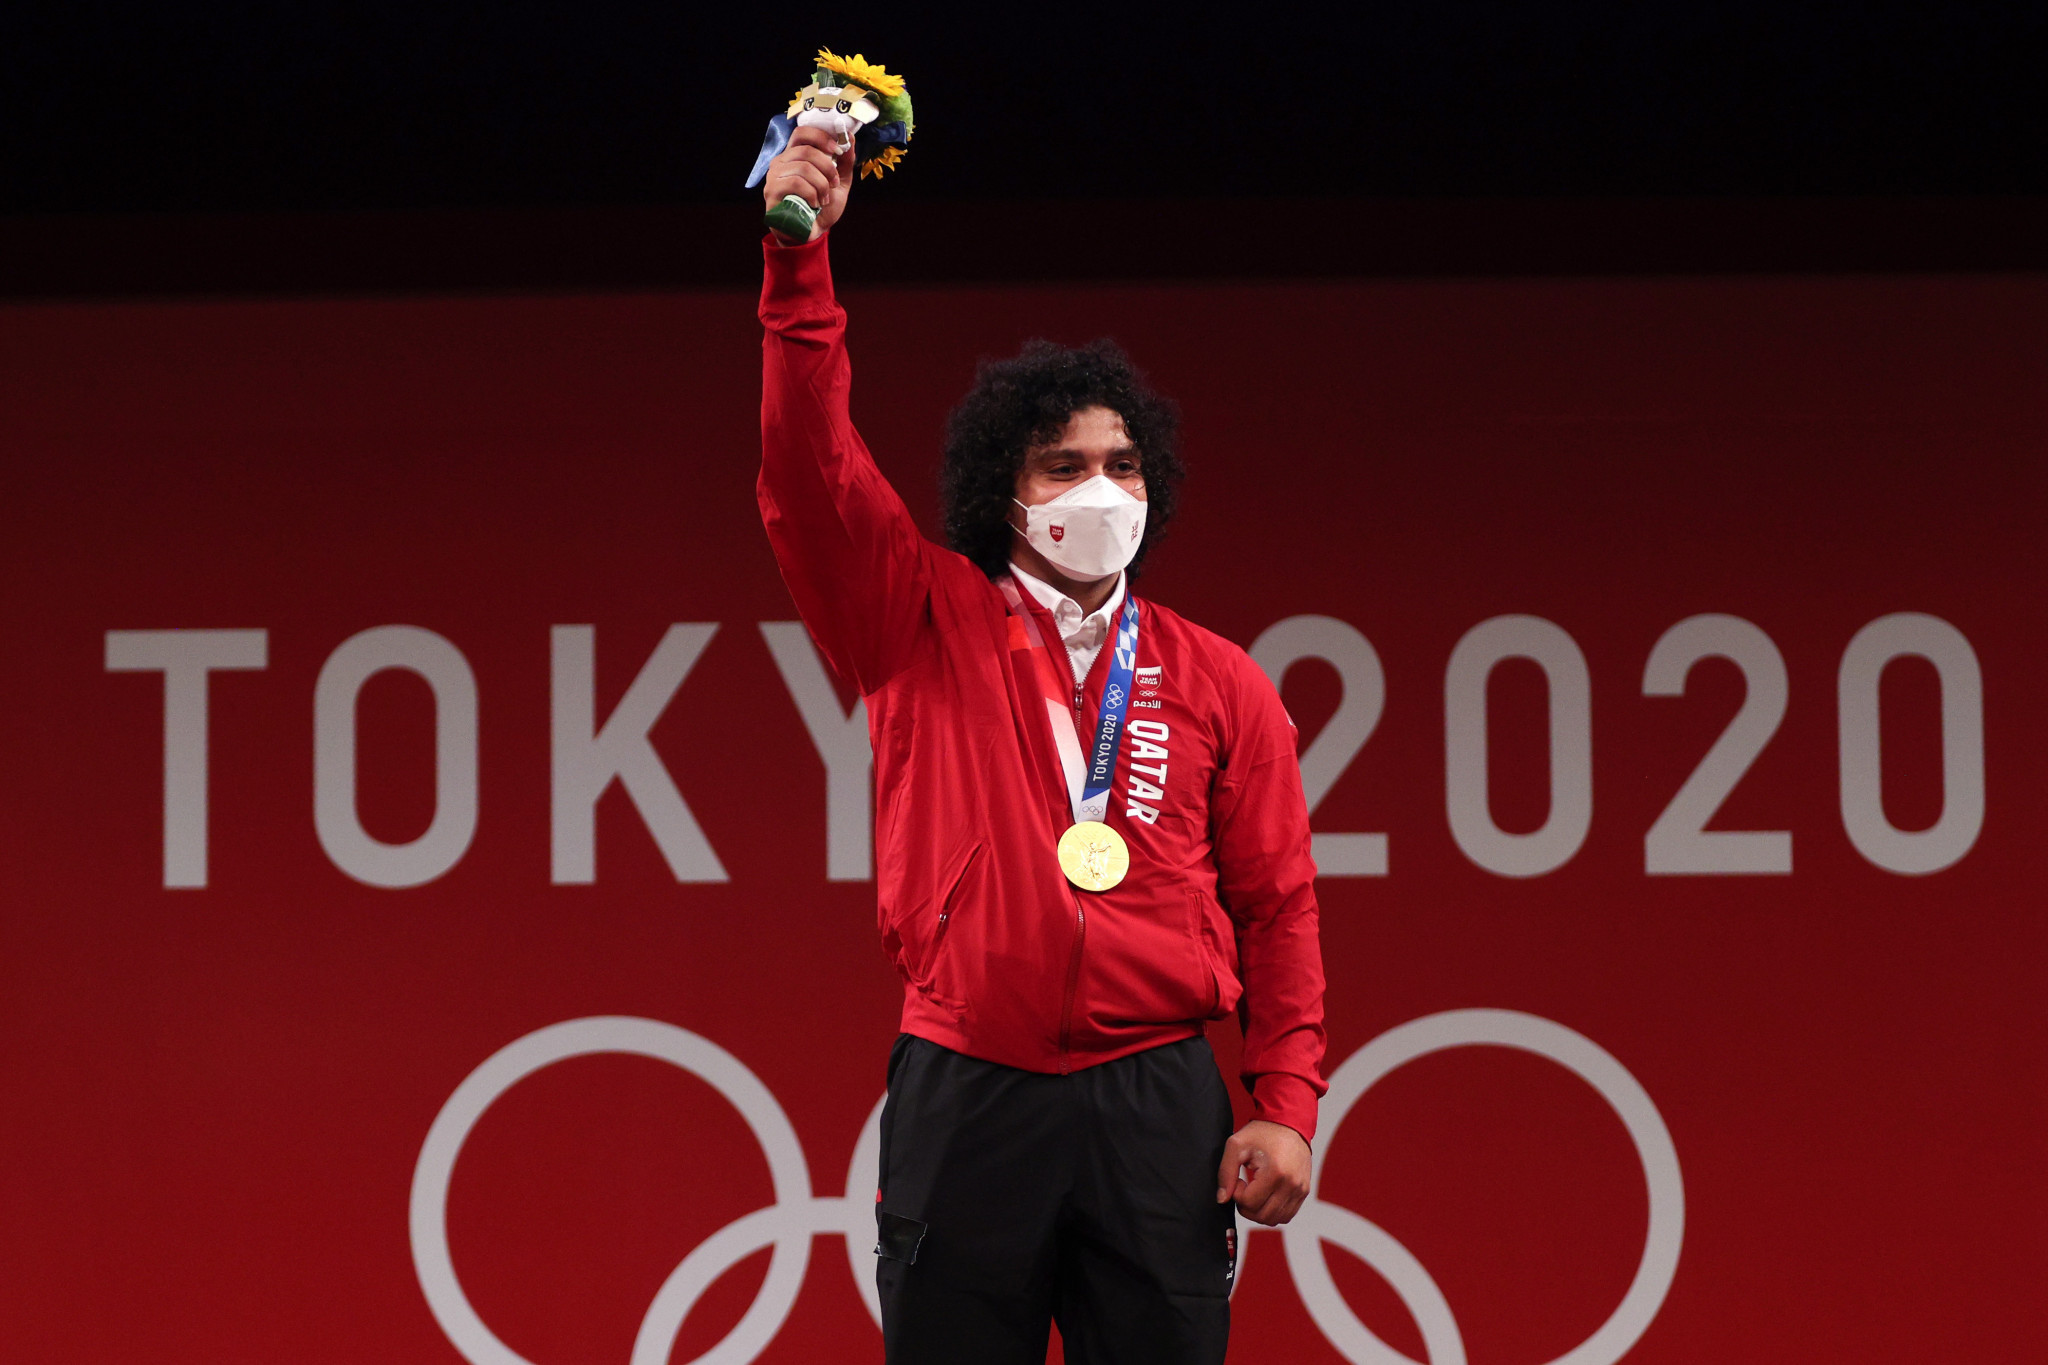 Weightlifter Meso wins Qatar's first ever Olympic gold medal